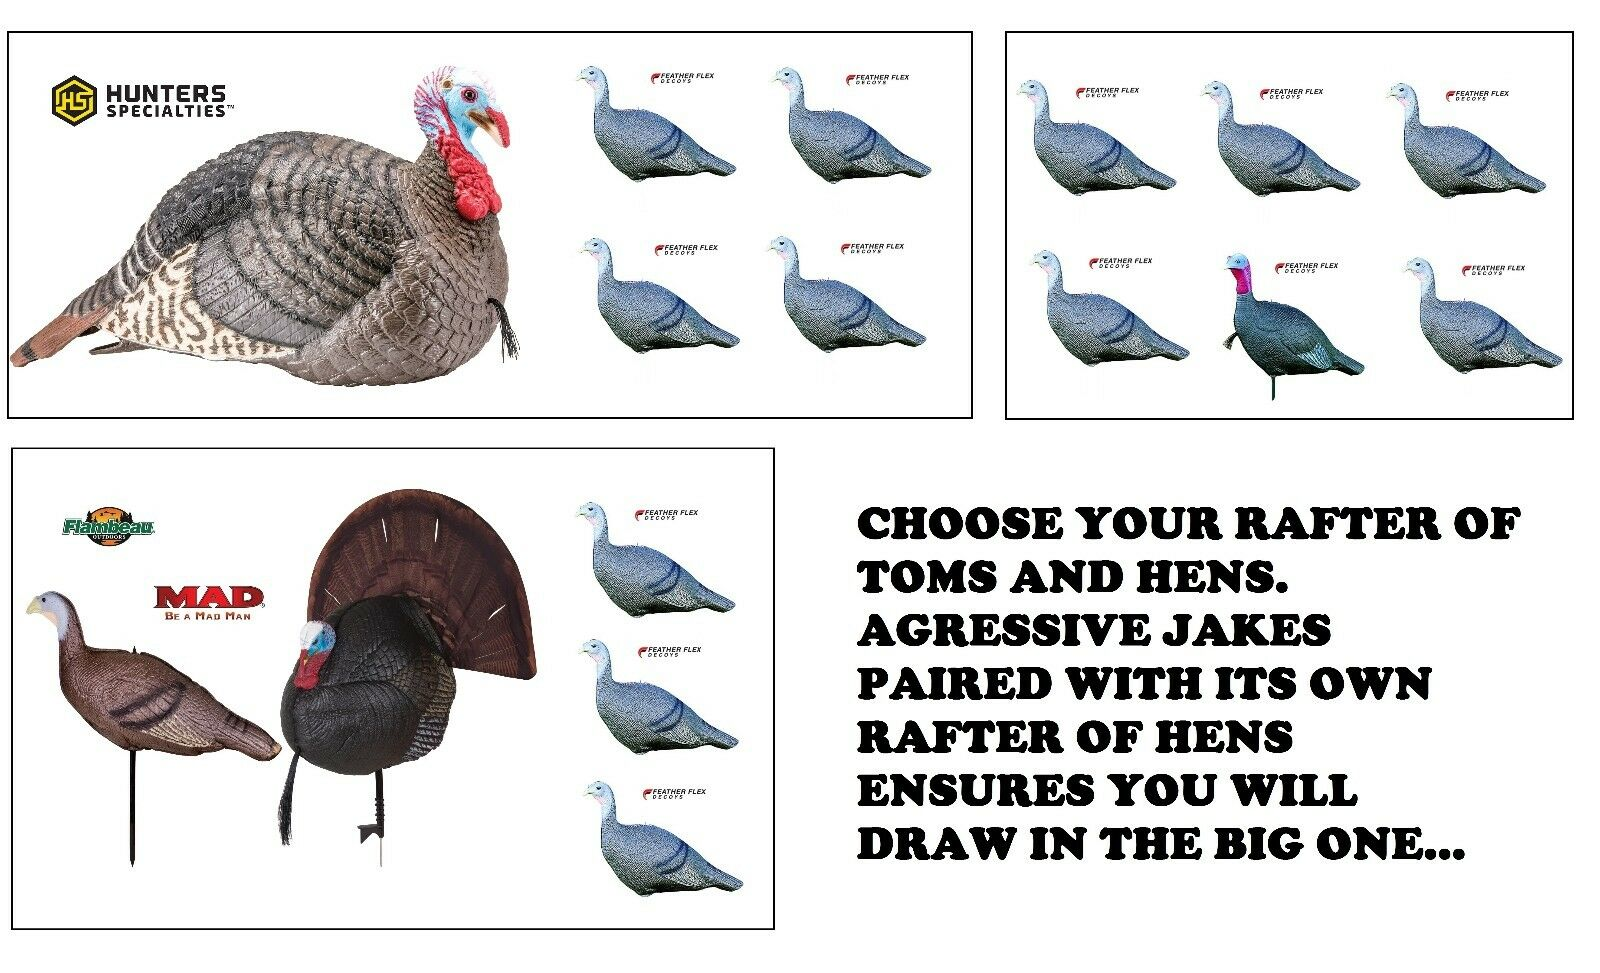 Turkey  Jake Hen Combo Rafters Gobbler Brood Hunting Jake Jenny King Strut Decoys  with 60% off discount